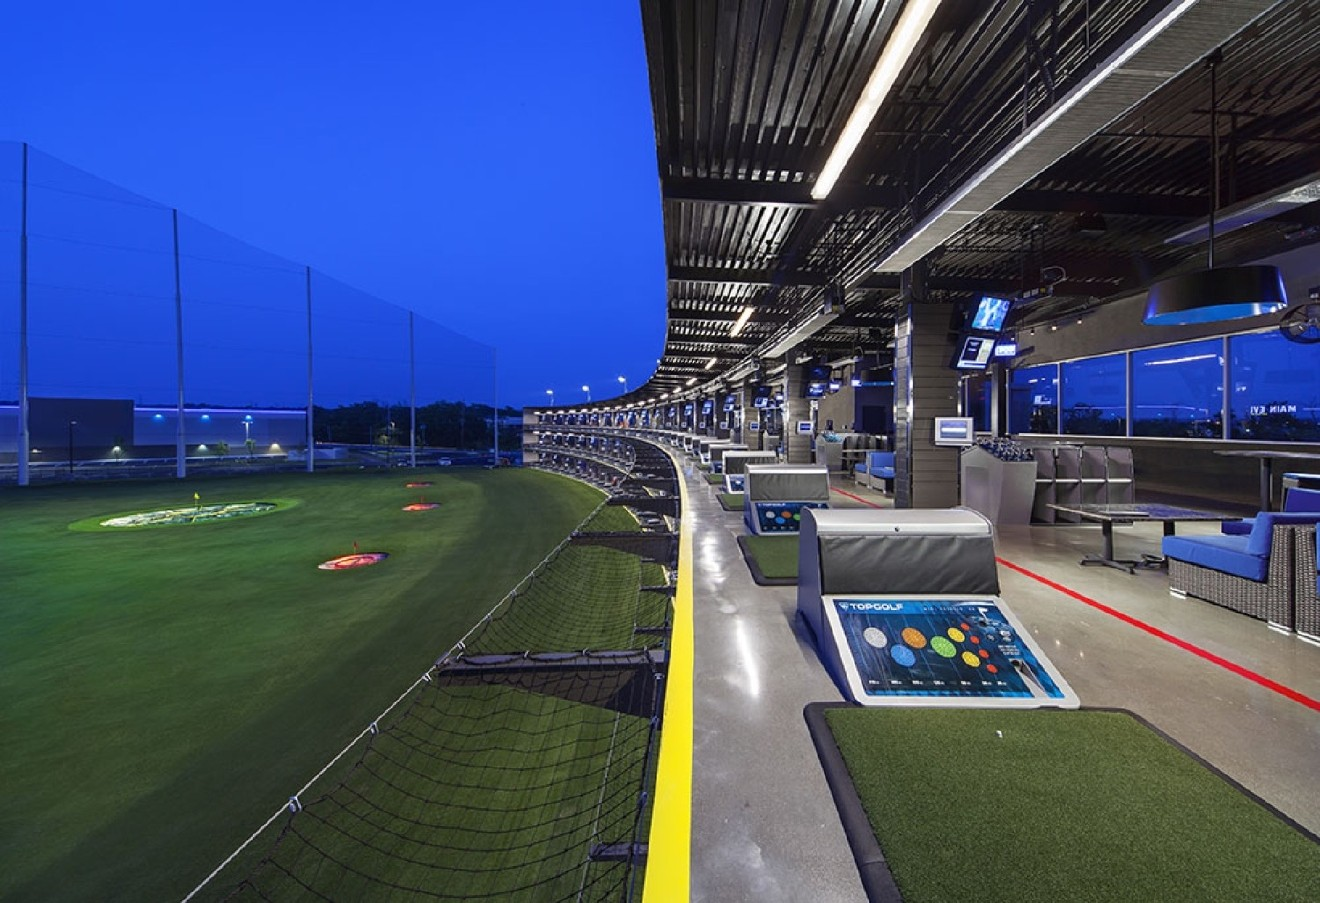 #6 - Even if you don't like Topgolf, there's a good chance you'll have fun at this West Chester hangout spot. Don't believe us, check the Lifestyle section for the full story. / Image courtesy of Topgolf